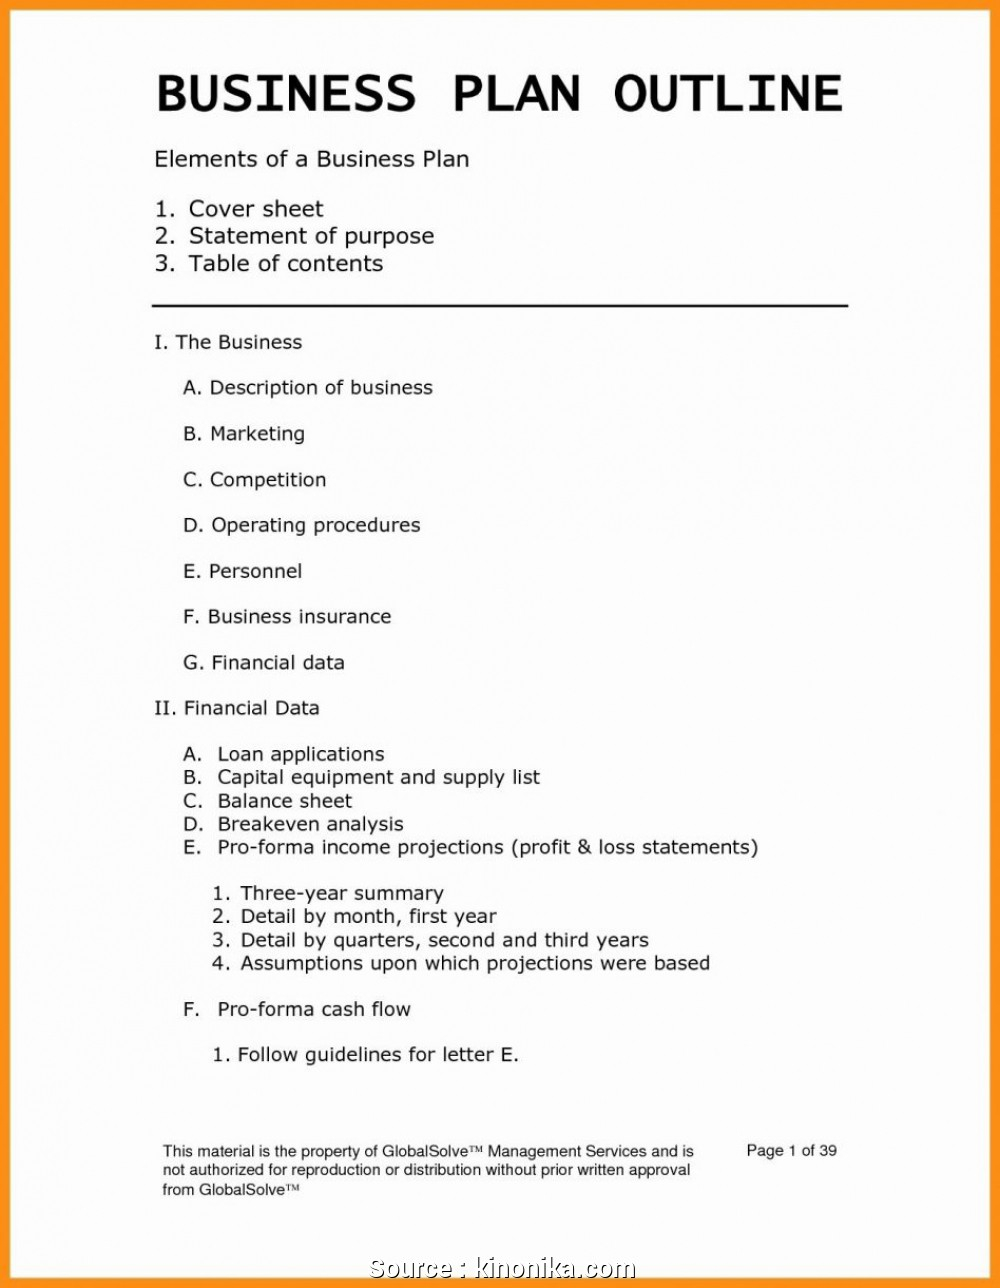 Online Clothing Store Business Plan New Template Photos Pertaining To Clothing Store Business Plan Template Free